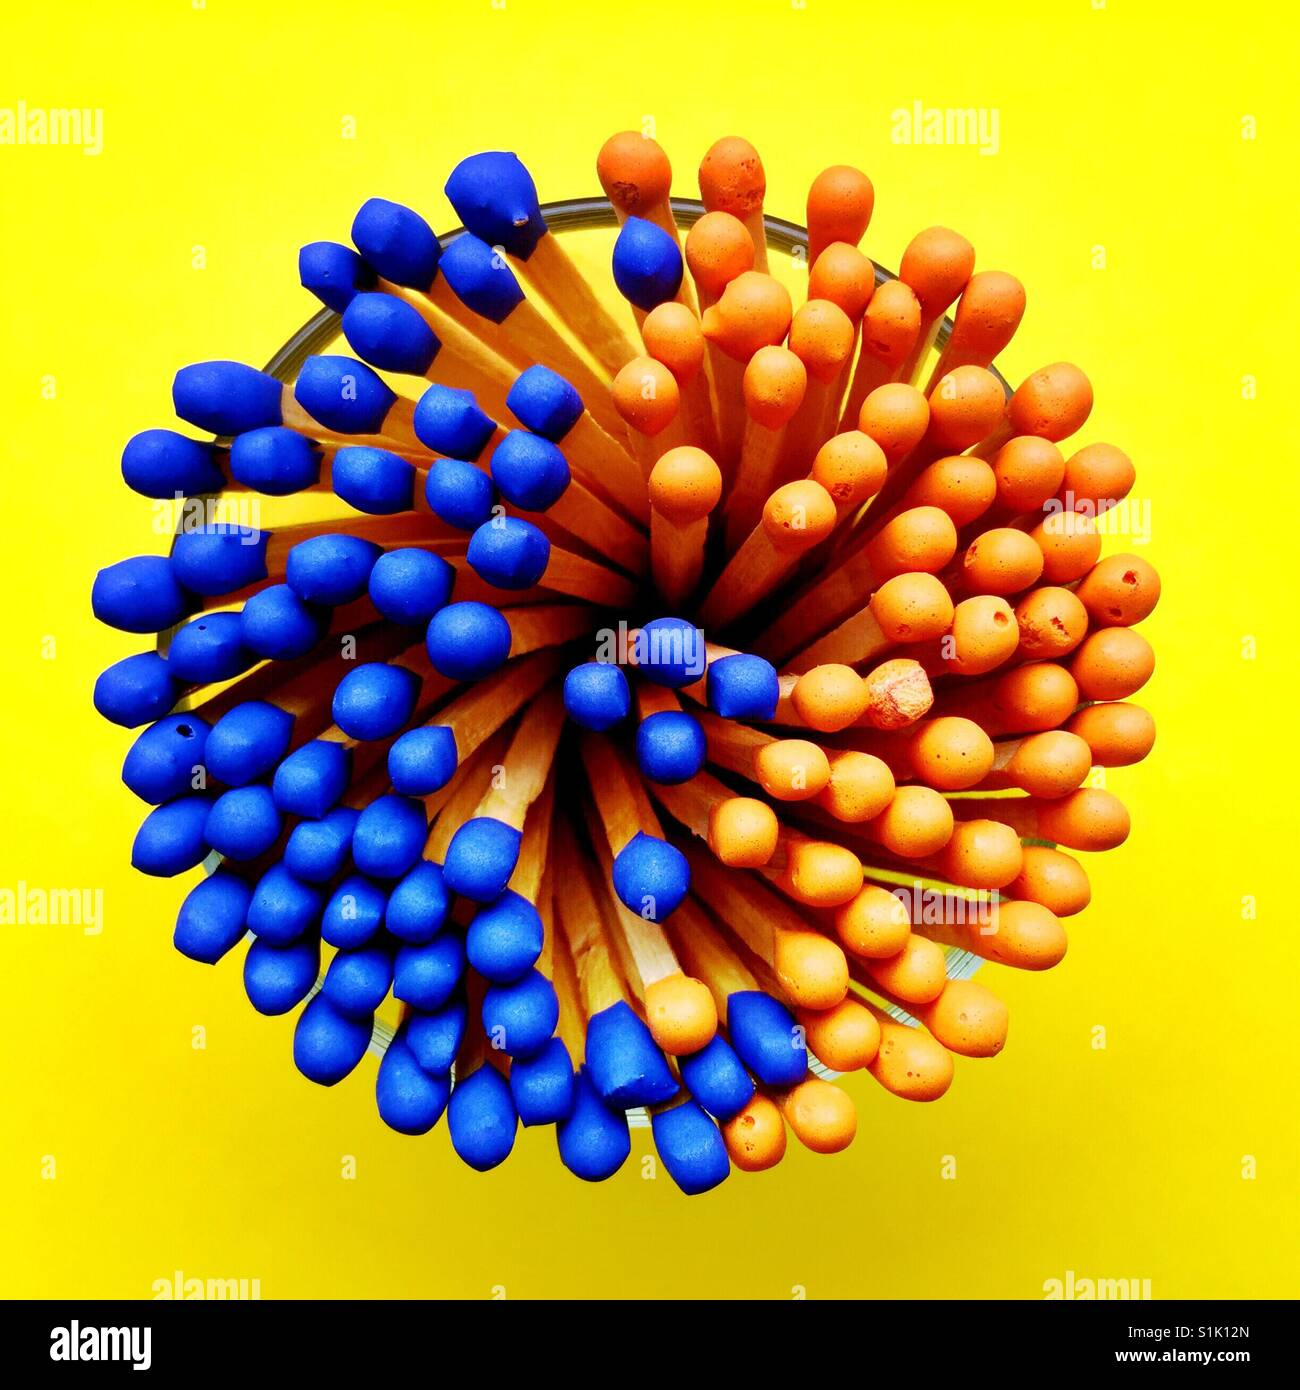 An overhead shot of a bunch of blue and orange tipped matchsticks in a glass container - Stock Image